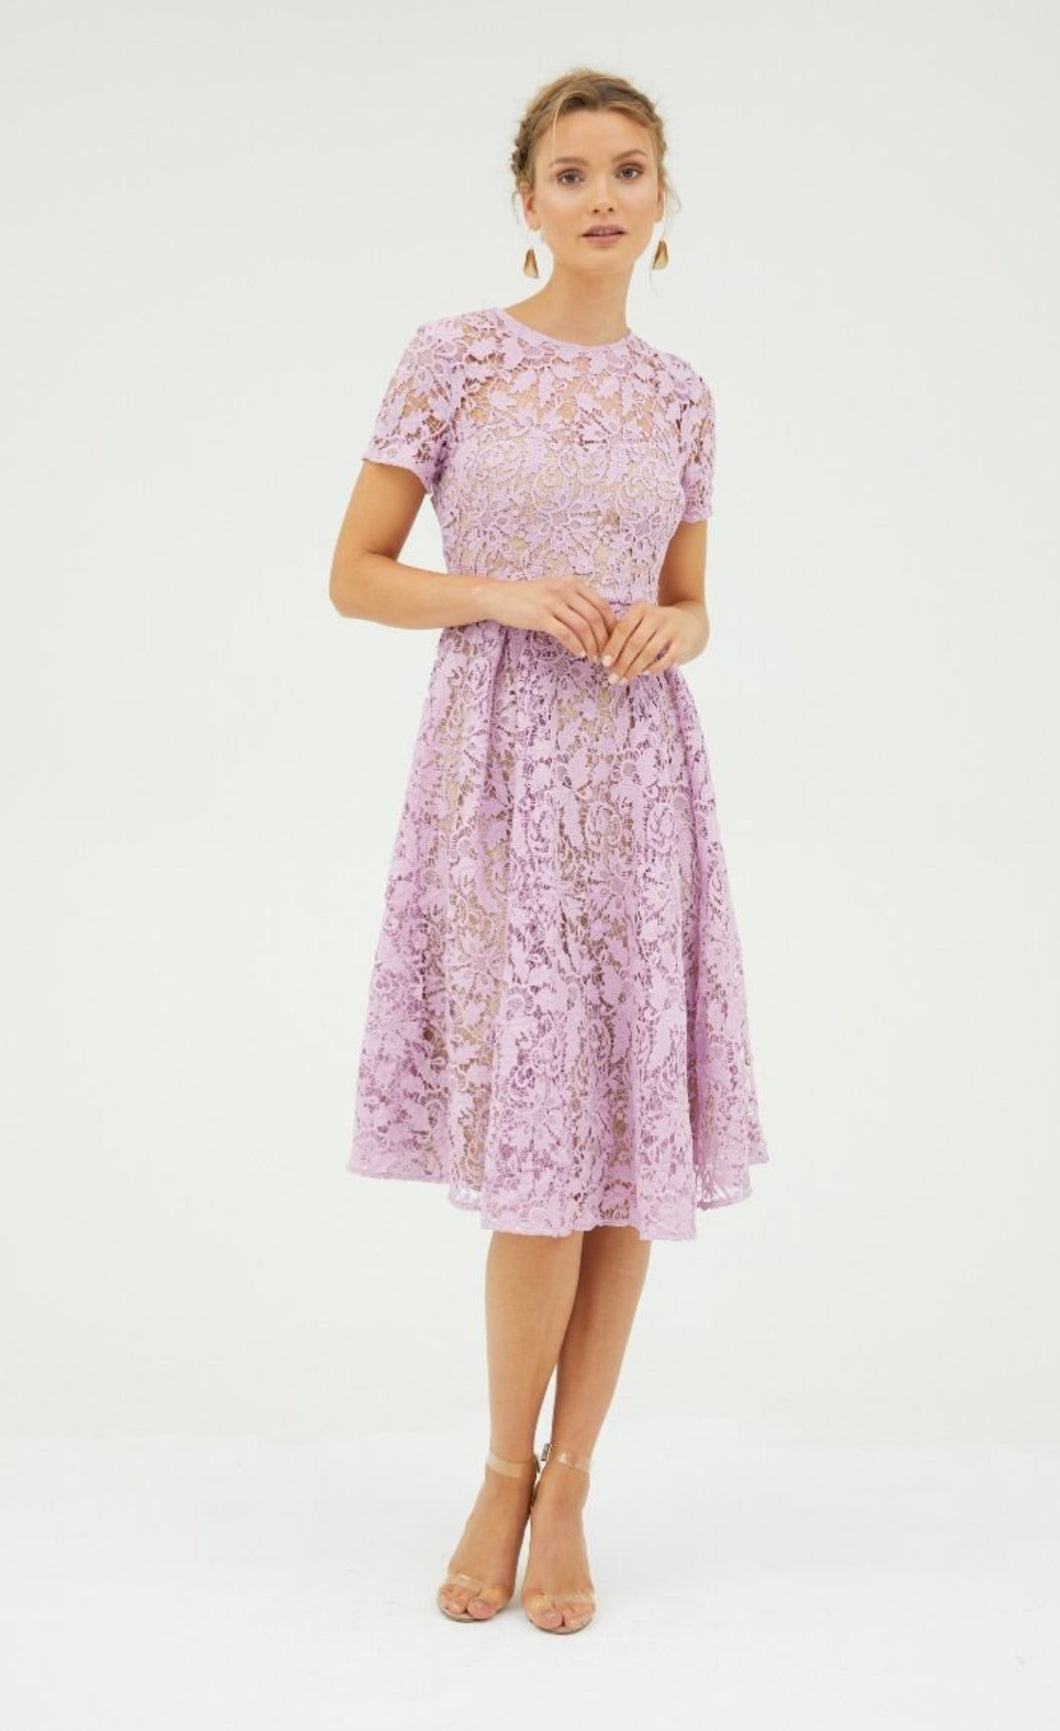 SNAPDRAGON FIT AND FLARE LACE DRESS - FLOSS